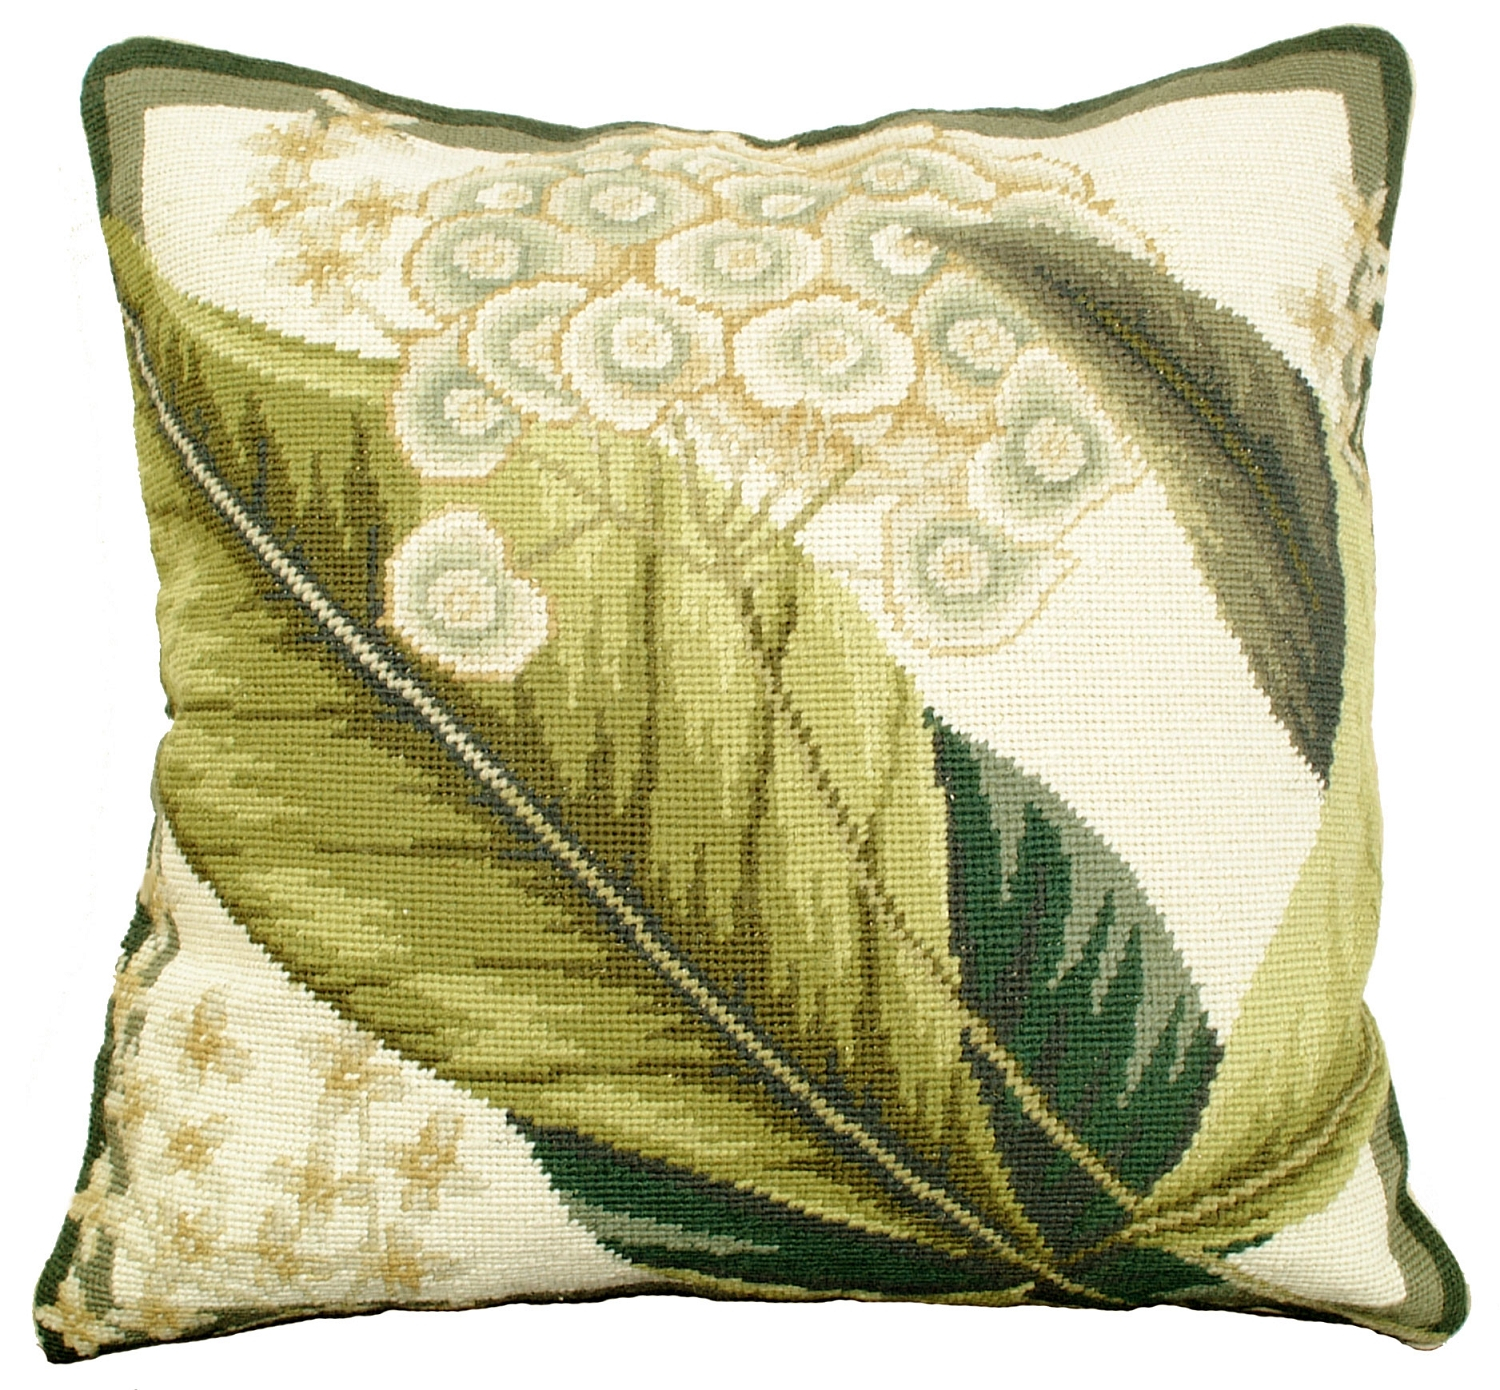 needlepoint pillow needleptpillows htm kkweb pillows